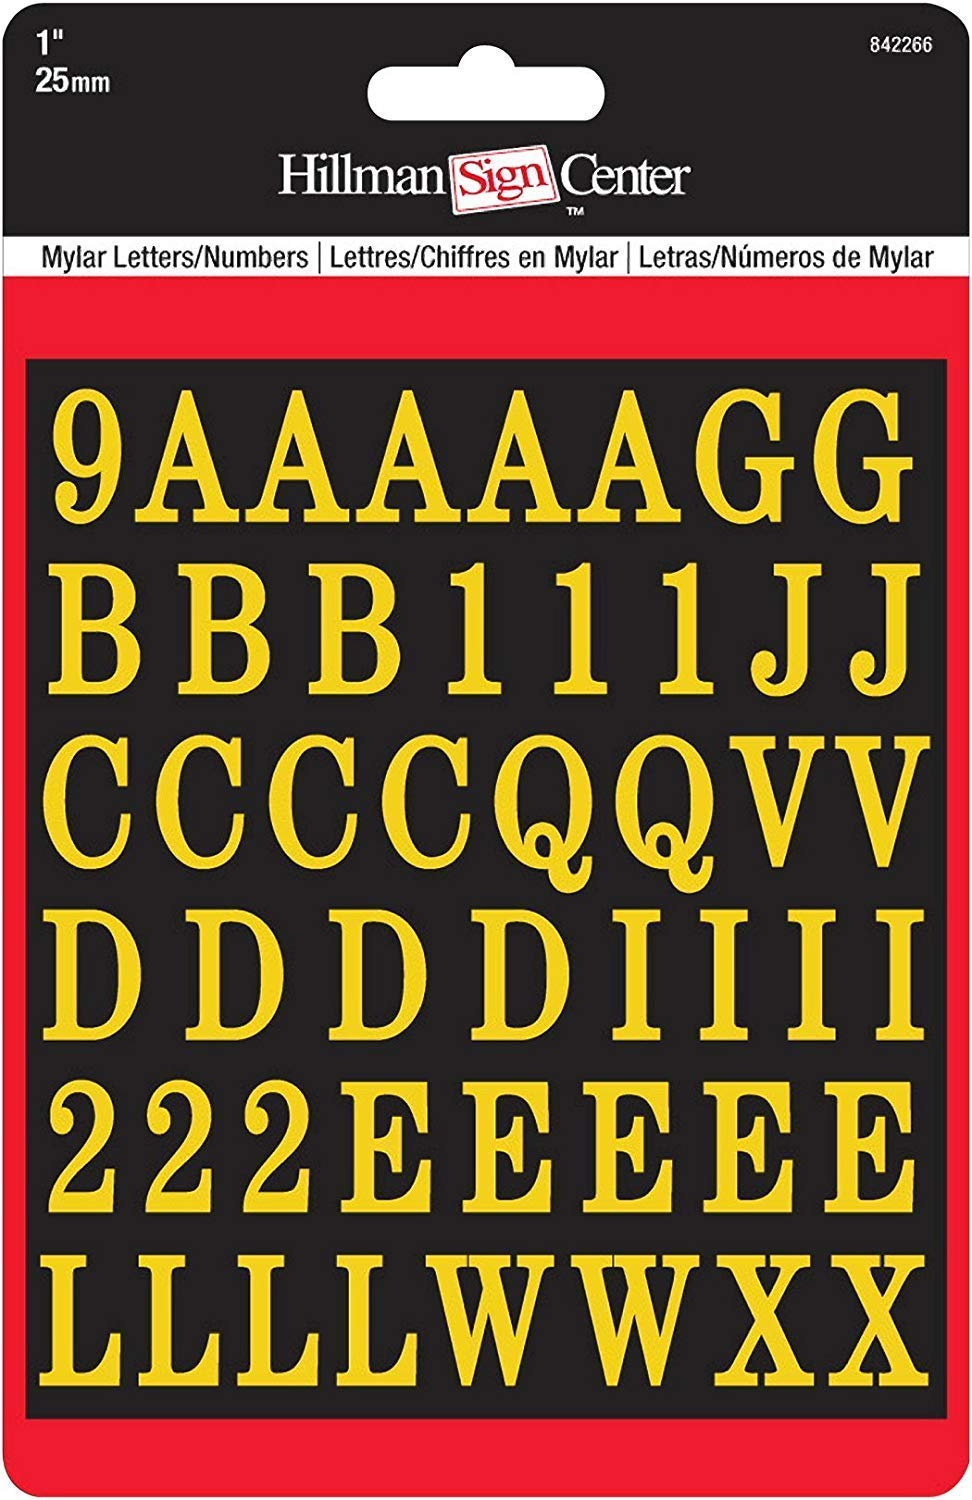 1-Inch Letters & Numbers Kit, Gold on Black, Square-Cut Mylar, Self-Adhesive (842266) - Six (6) Packs (Kits)